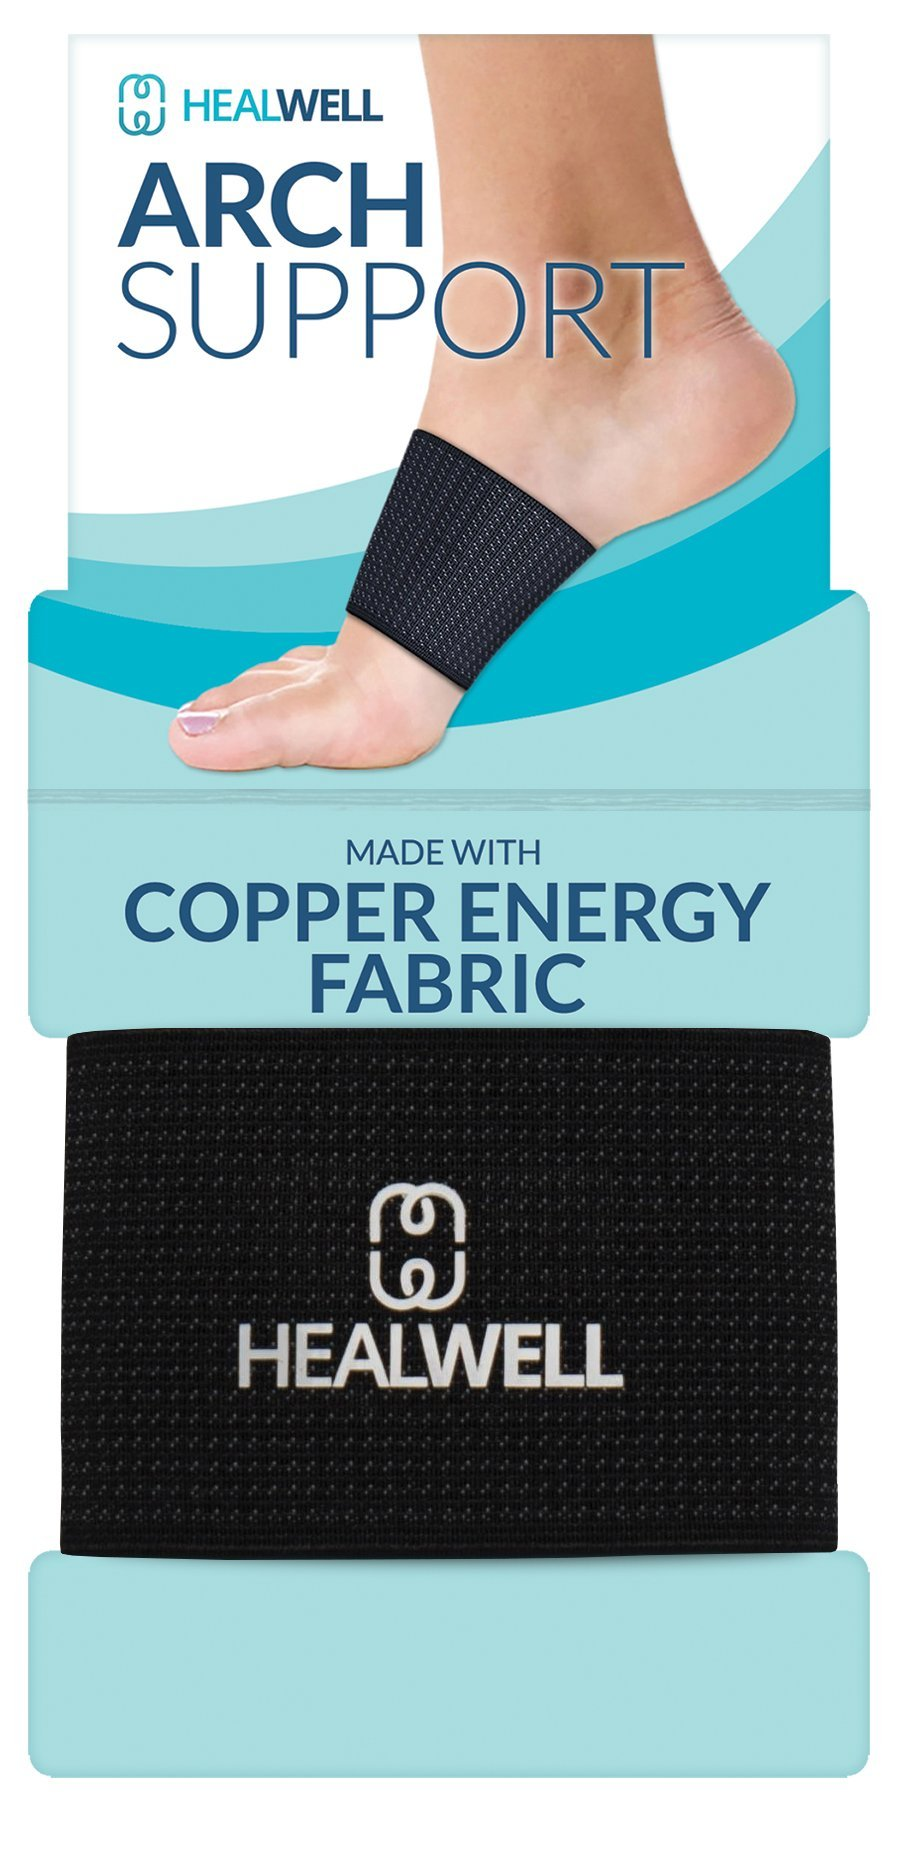 Healwell Plantar Fasciitis Arch Support Flat Foot Brace Copper Compression Shoe Insert Heel Spur Pain Relief Sleeves For Therapy and Exercise Men and Women - Pack of 2 … by Healwell